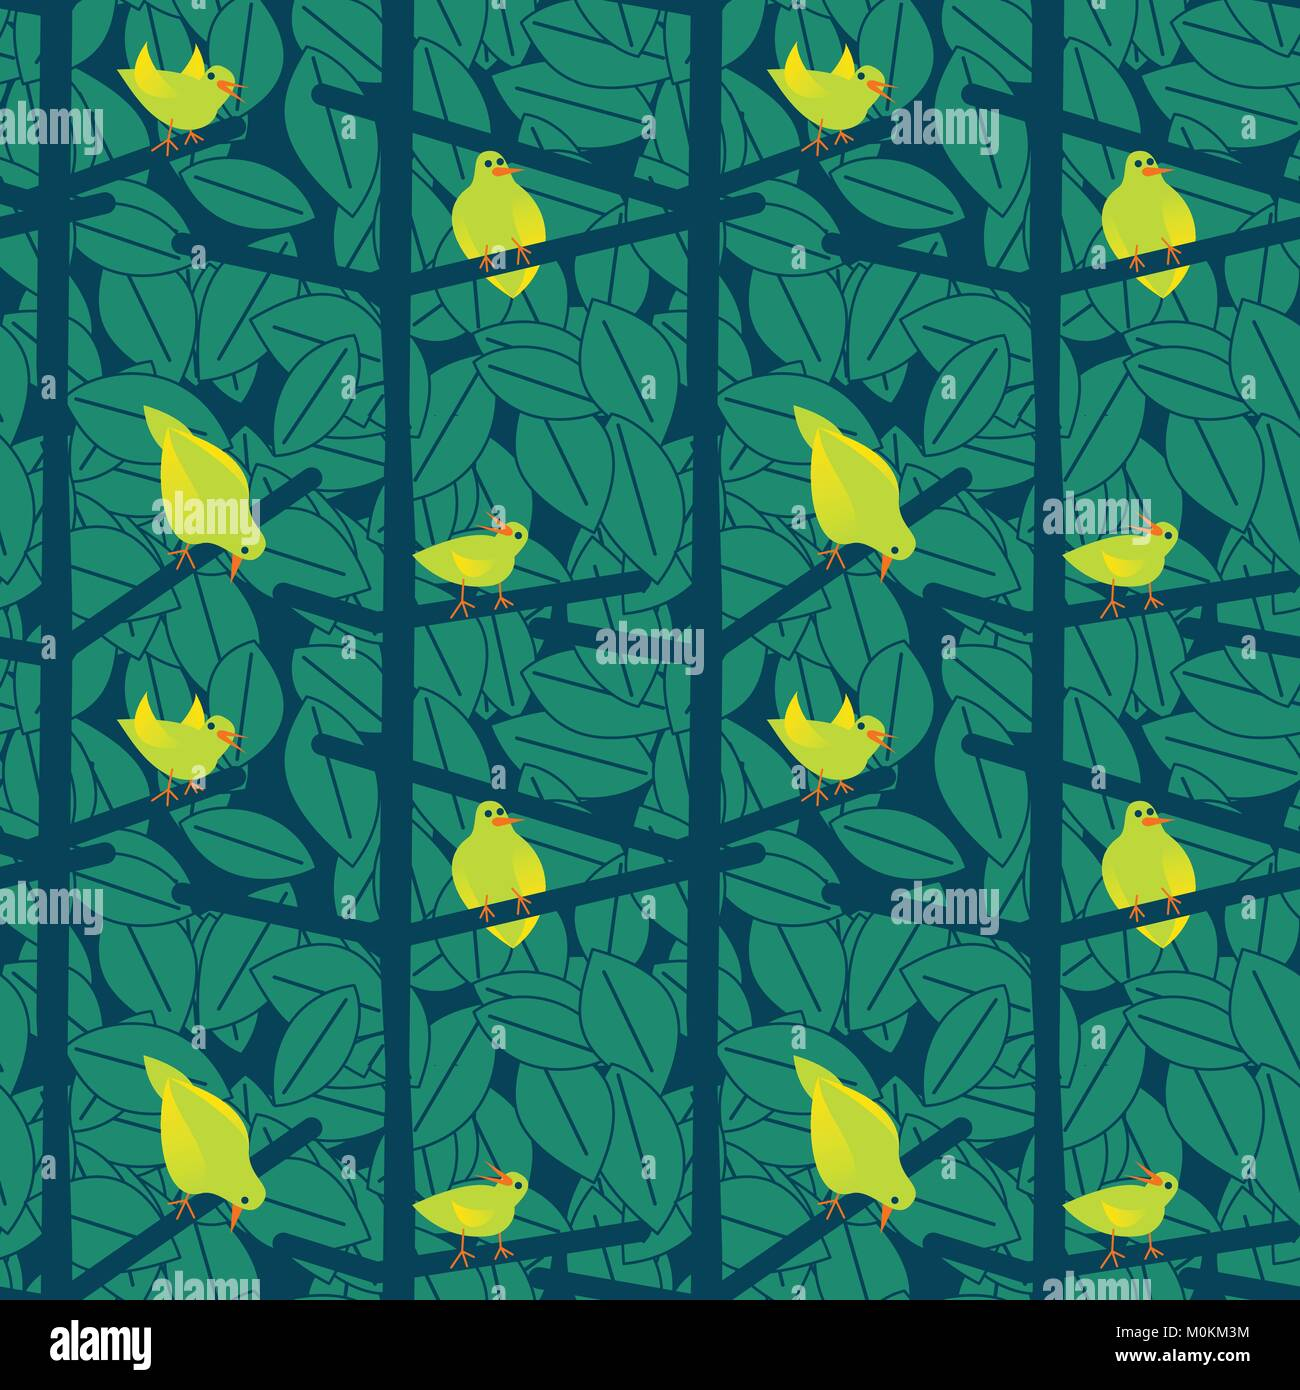 A , seamless, repeat pattern of birds in a bush, in the Scandinavian style. Stock Vector